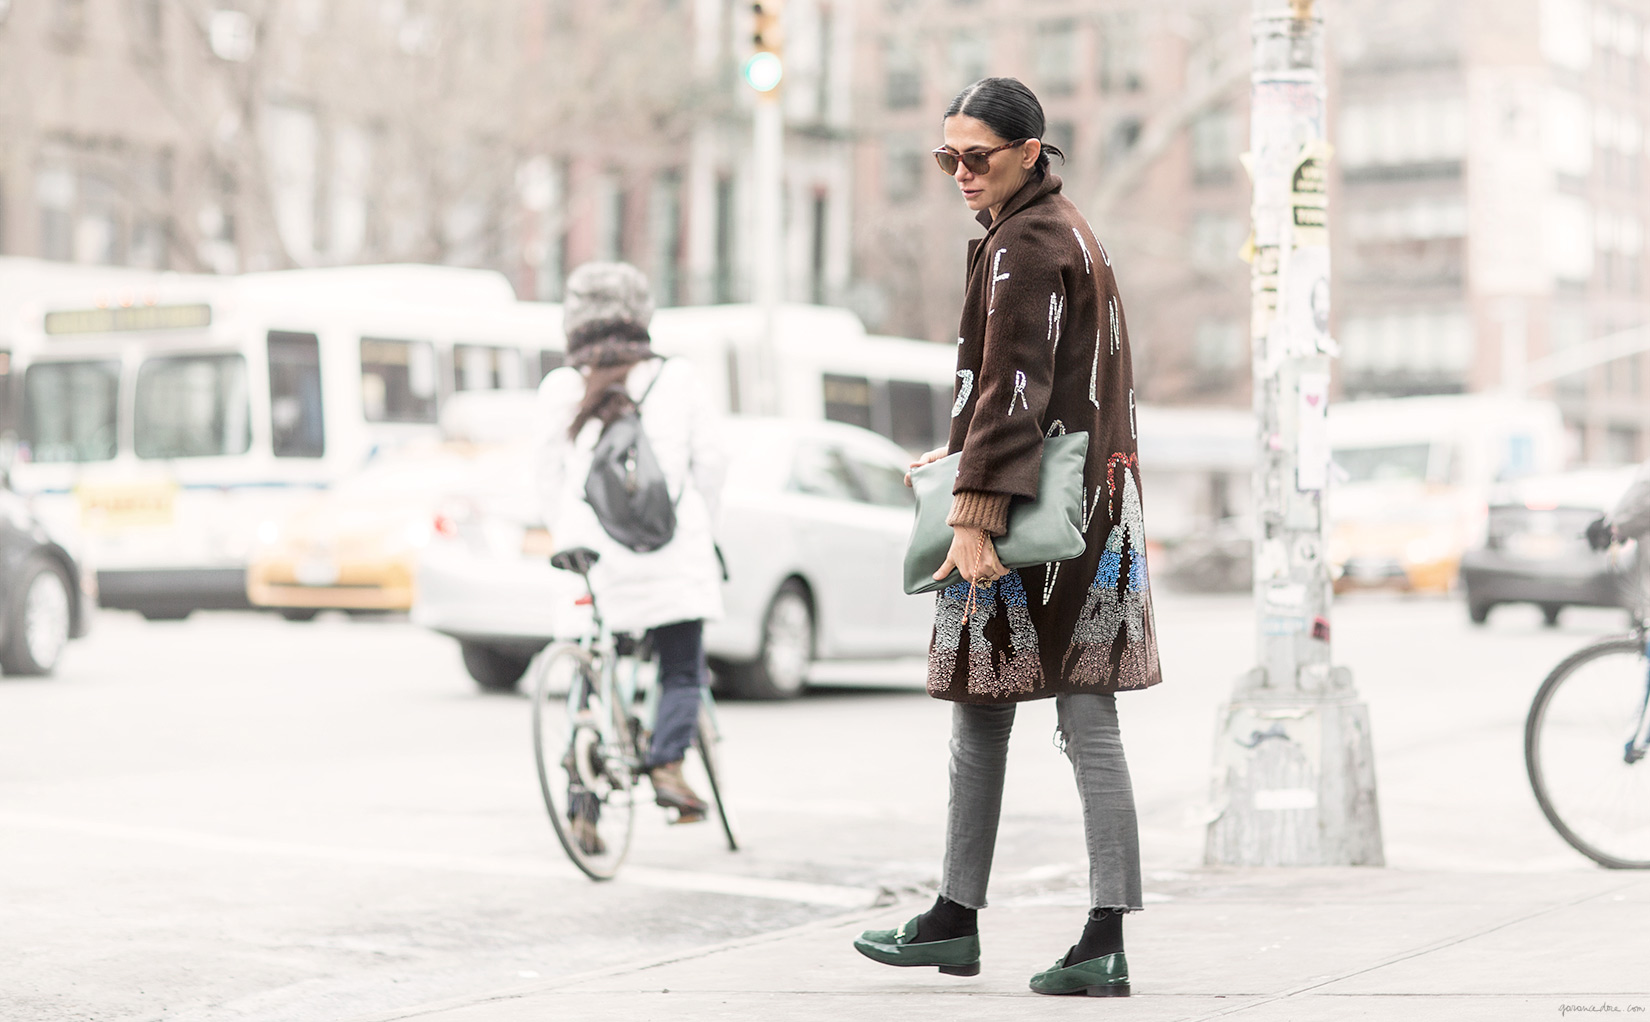 Atelier Dore - Style MIX OR MATCHread more